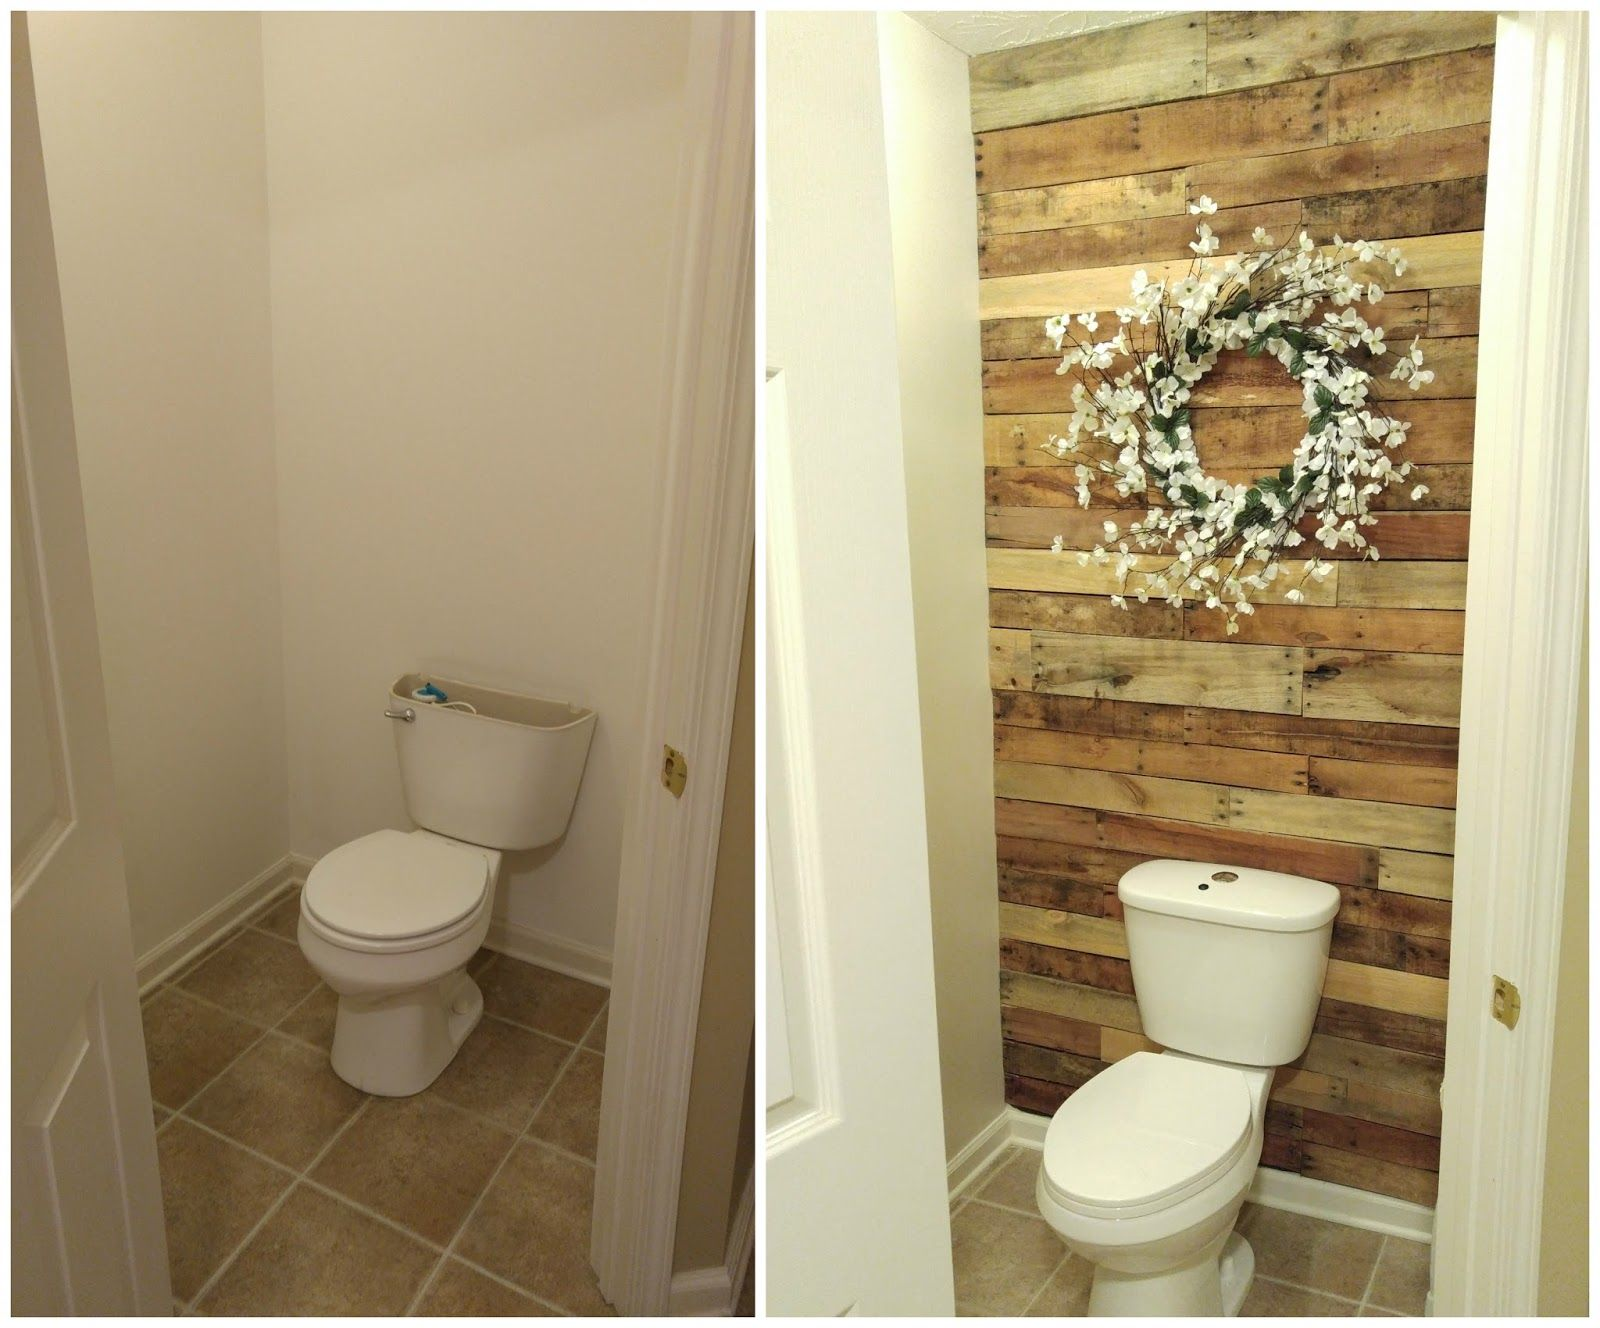 DIY Pallet Wall in the water closet  Wood pallet wall with wreath     DIY Pallet Wall in the water closet  Wood pallet wall with wreath  Bathroom  renovation